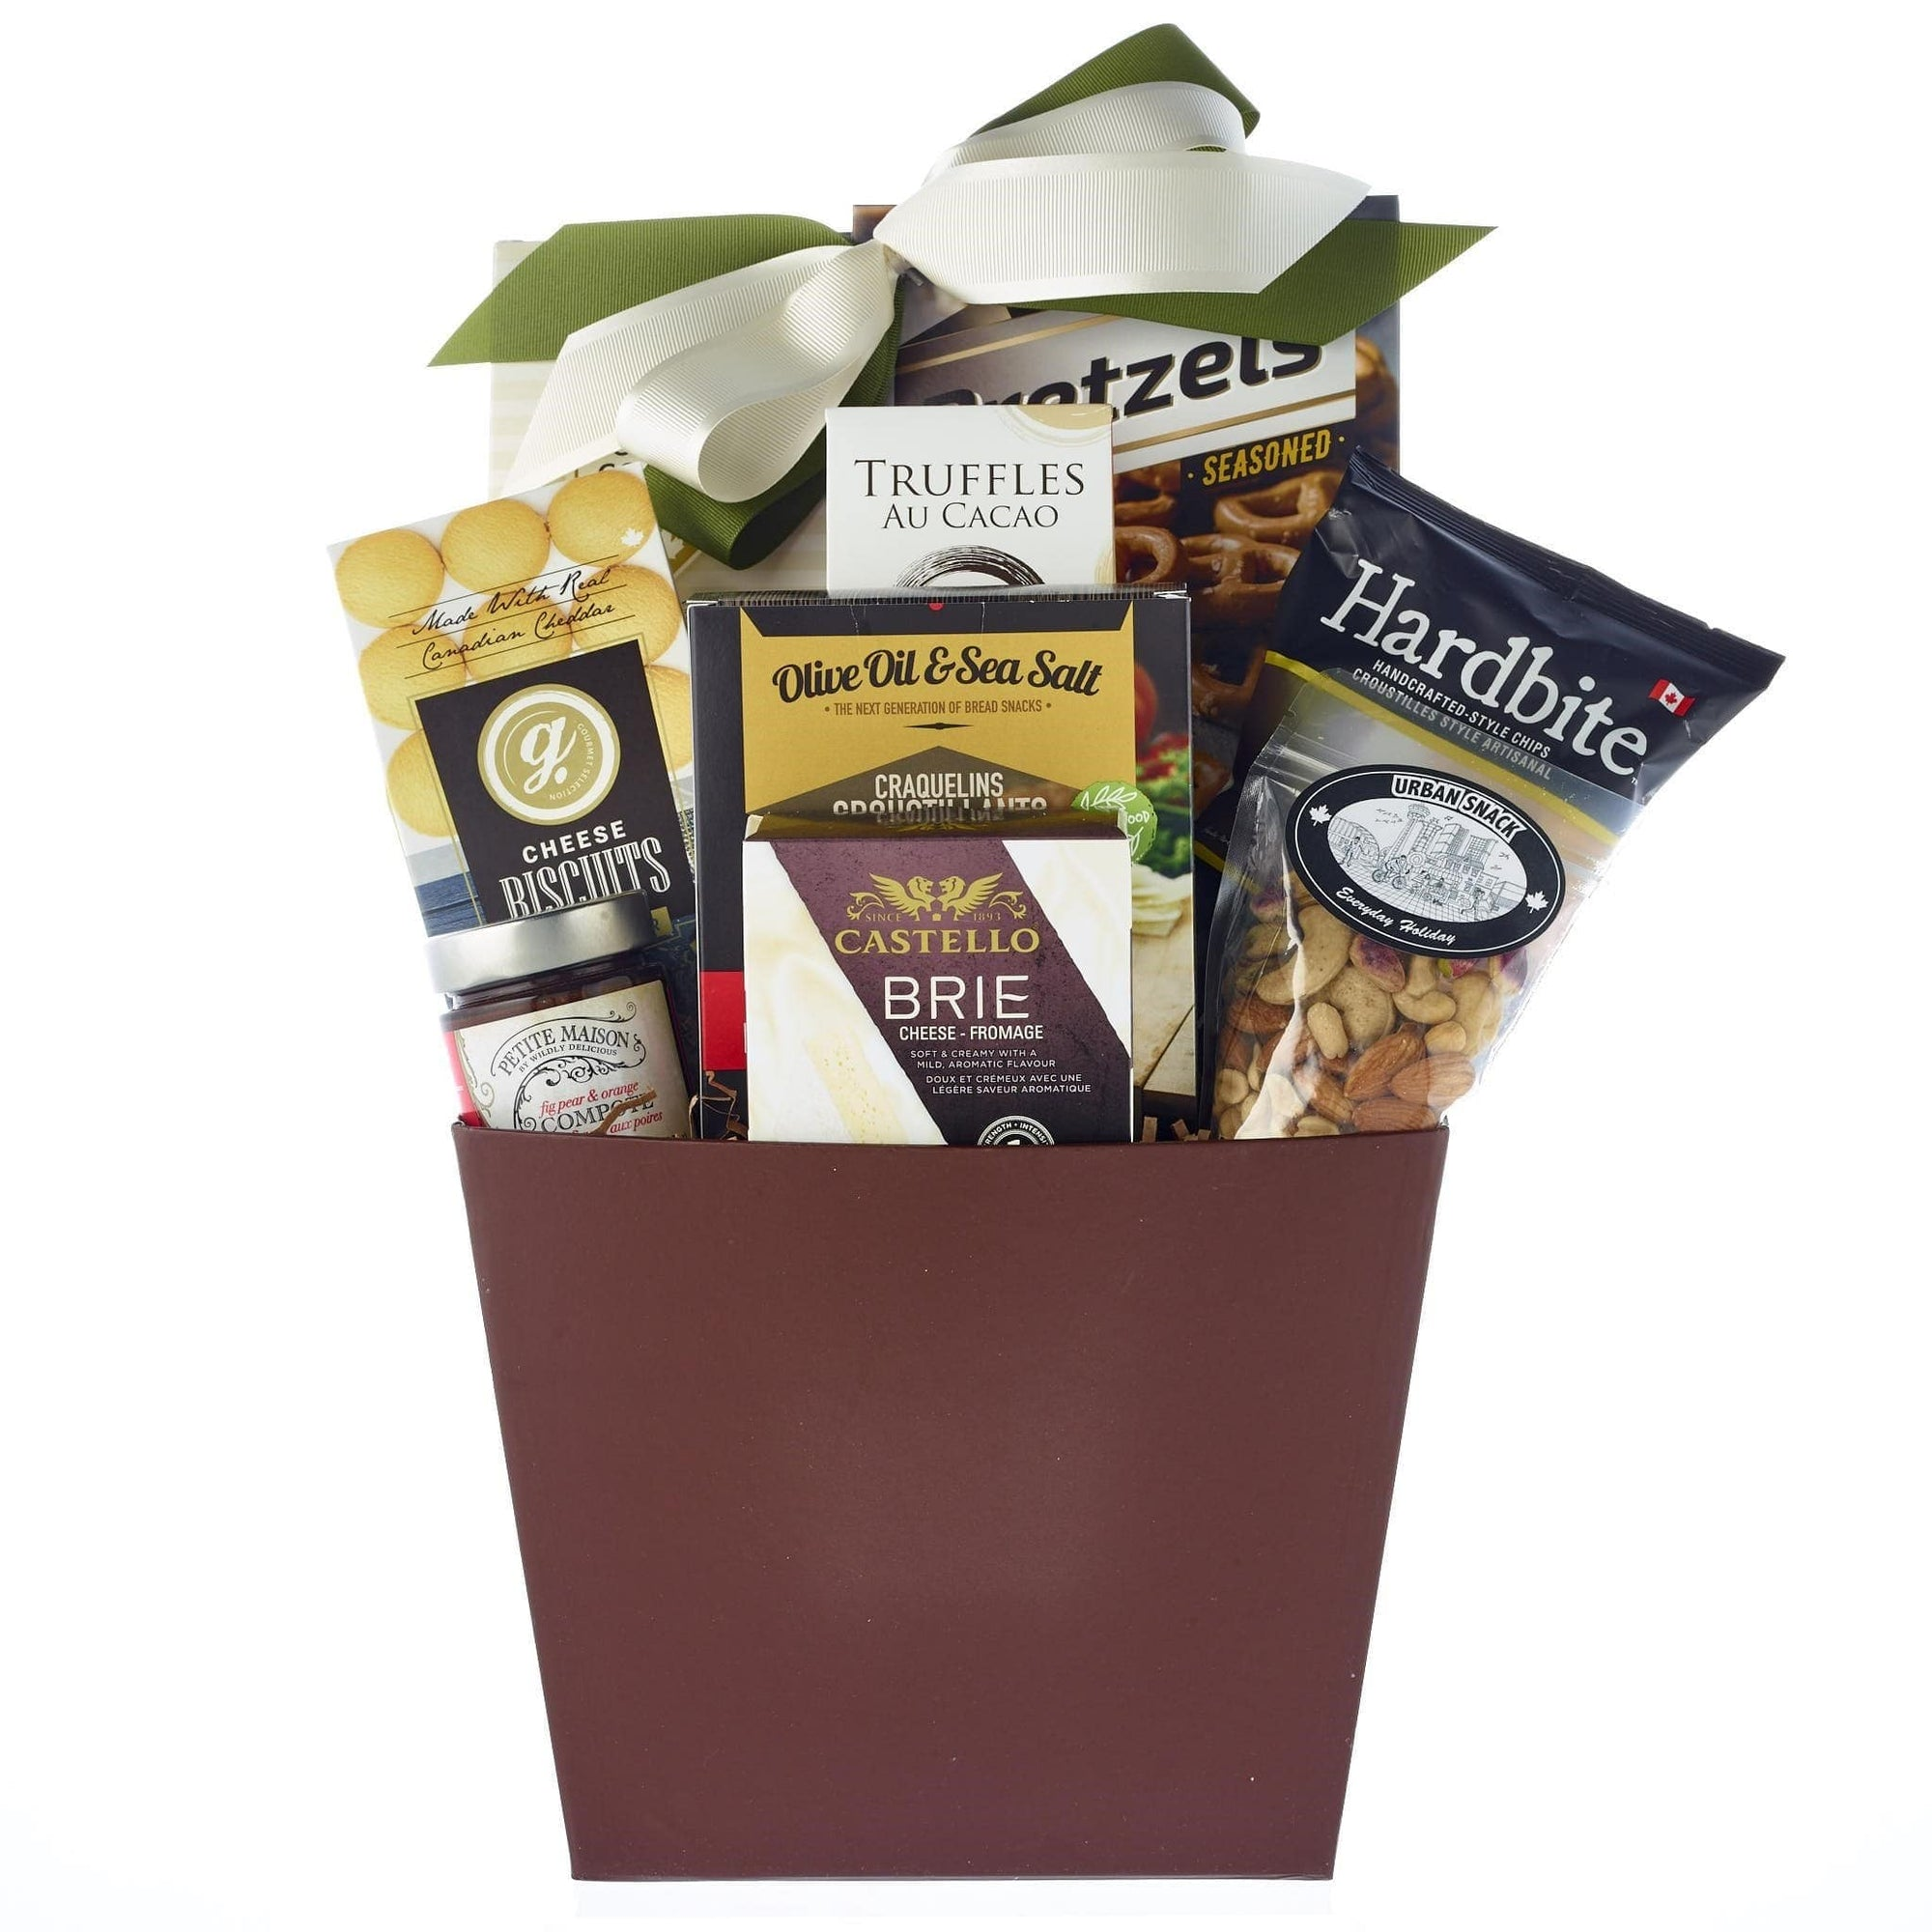 cheese, cookies, compote gift basket